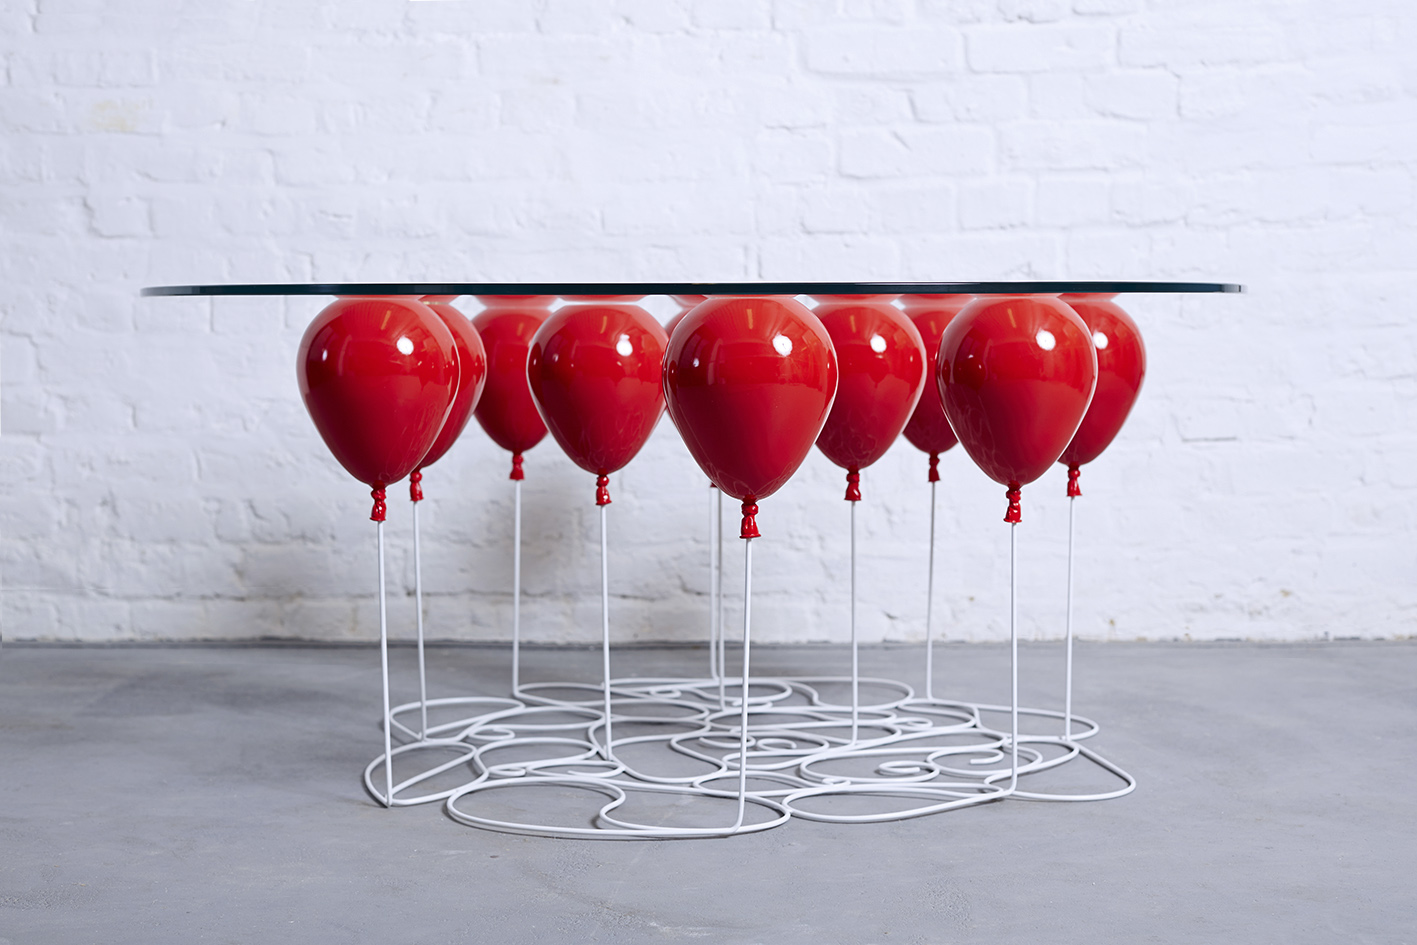 A Coffee Table Made Out Of Glass Based On 11 Helium